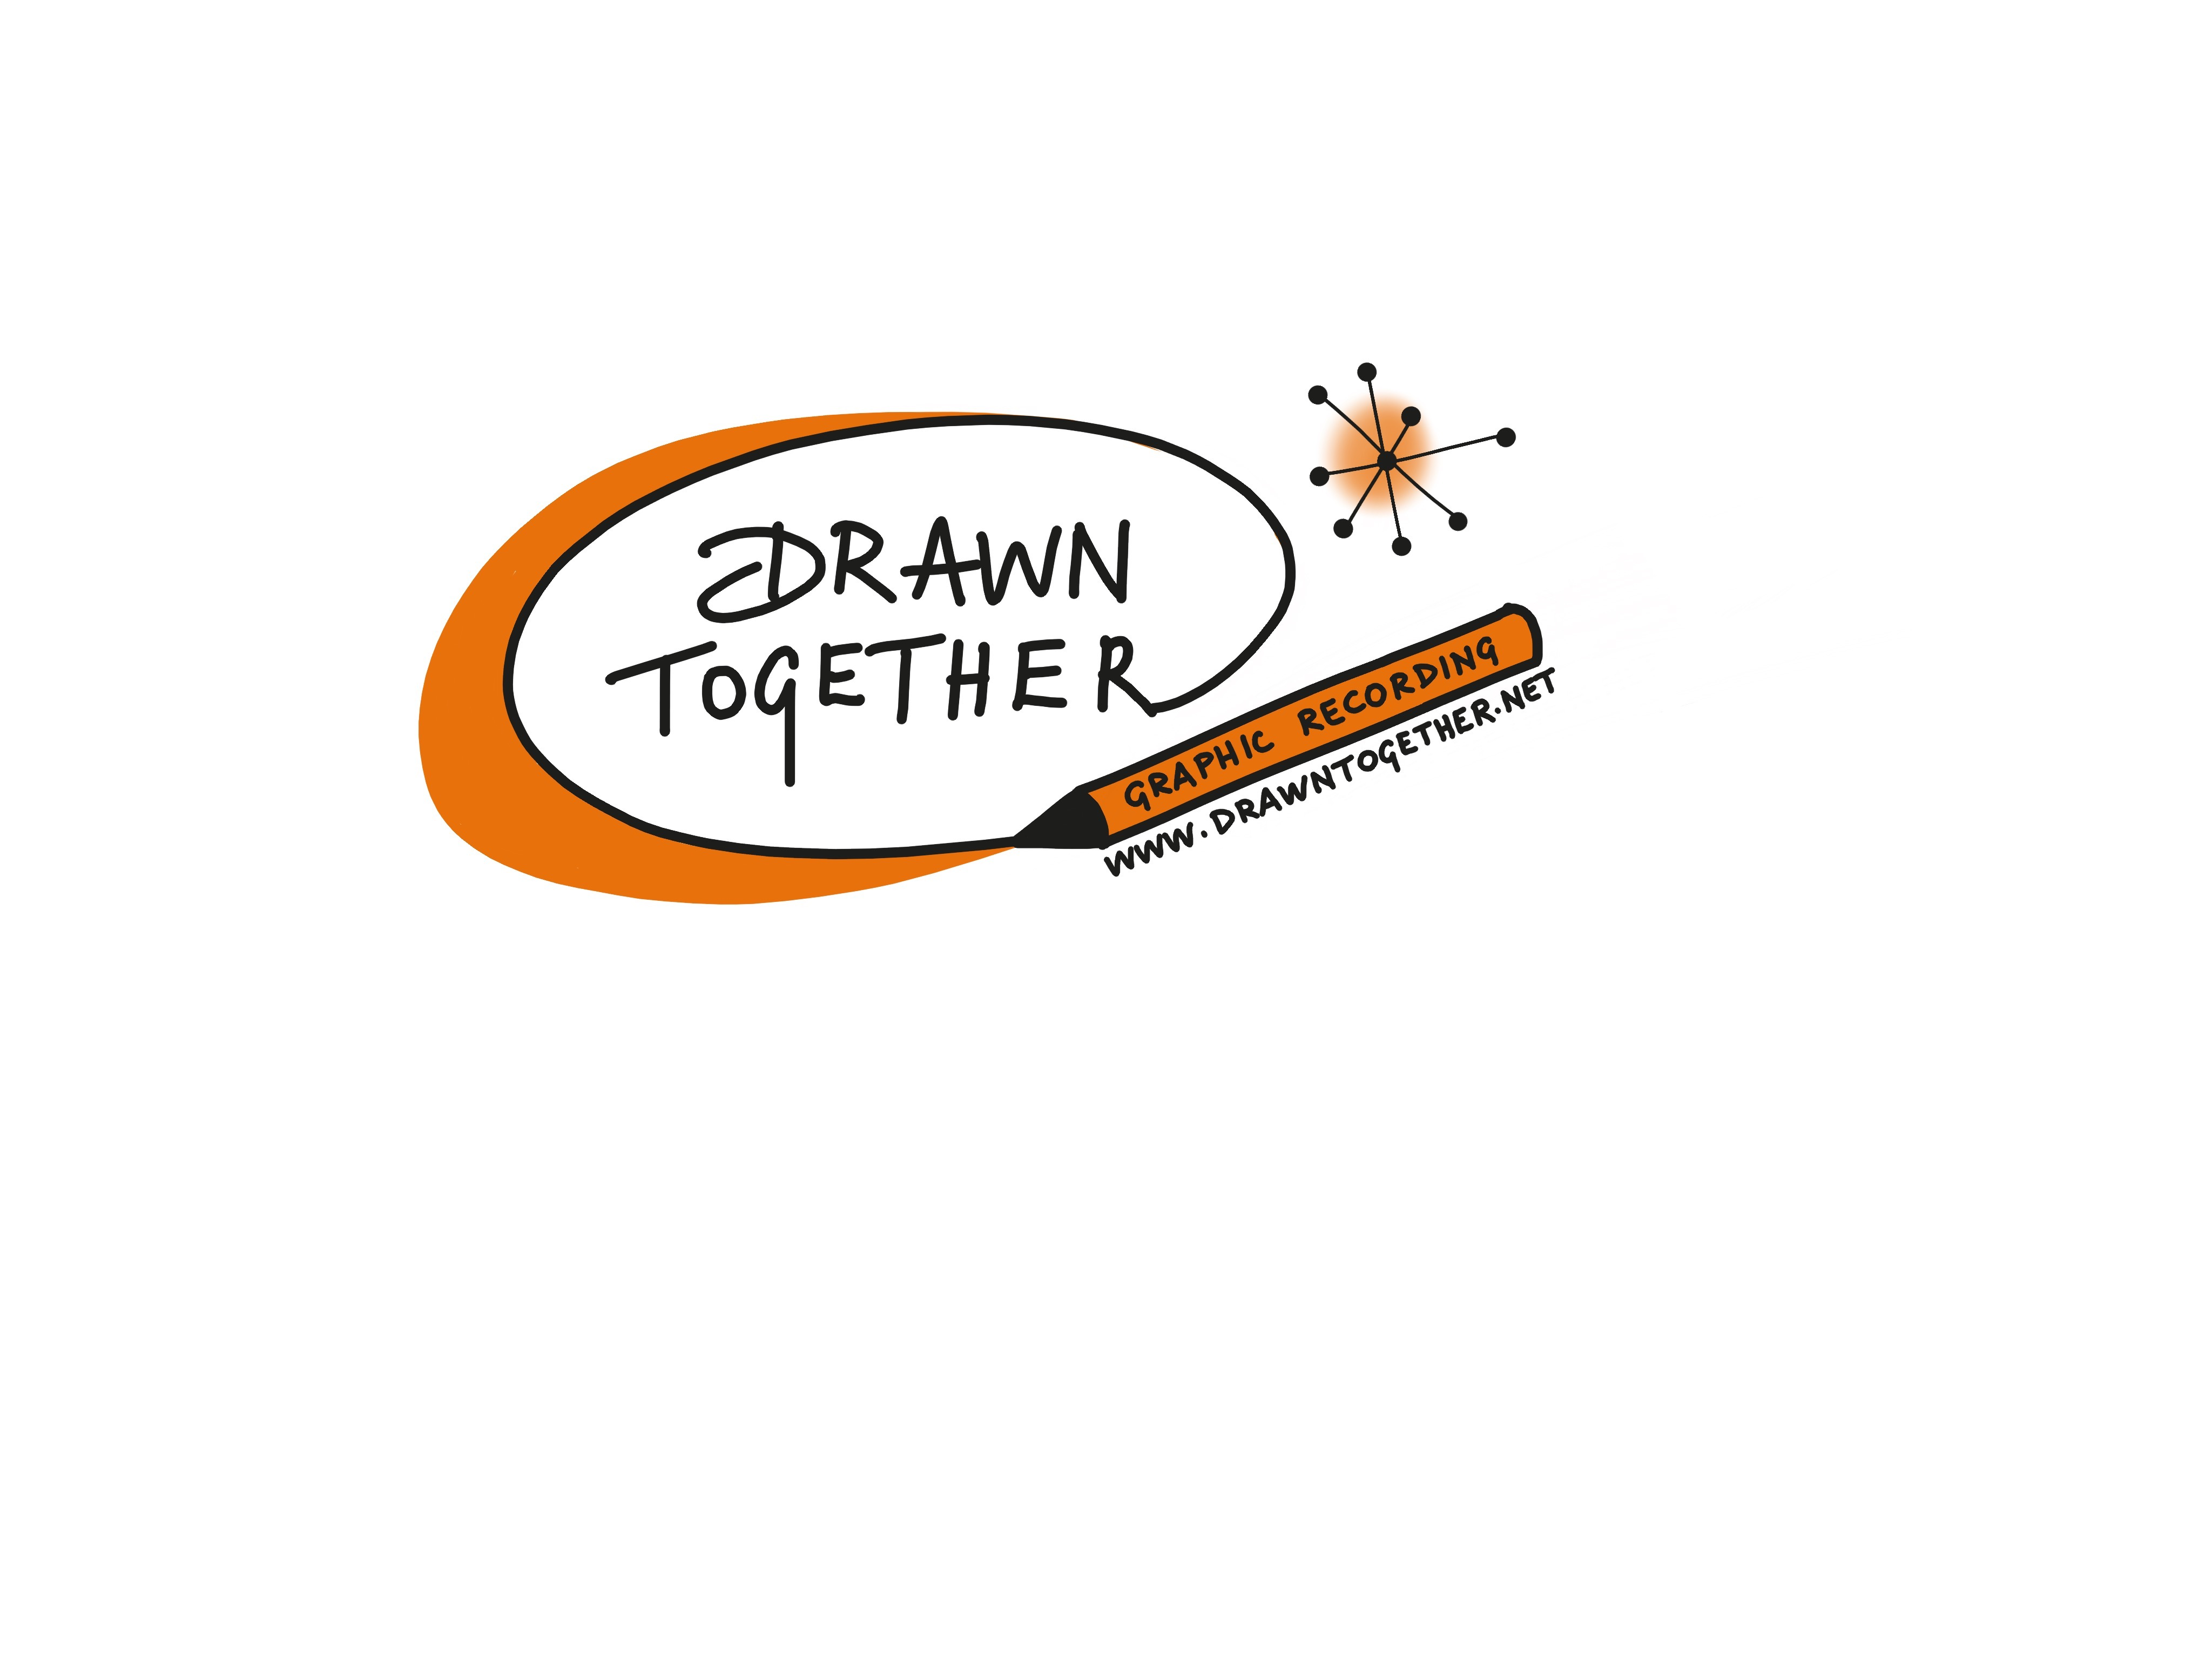 www.drawntogether.net